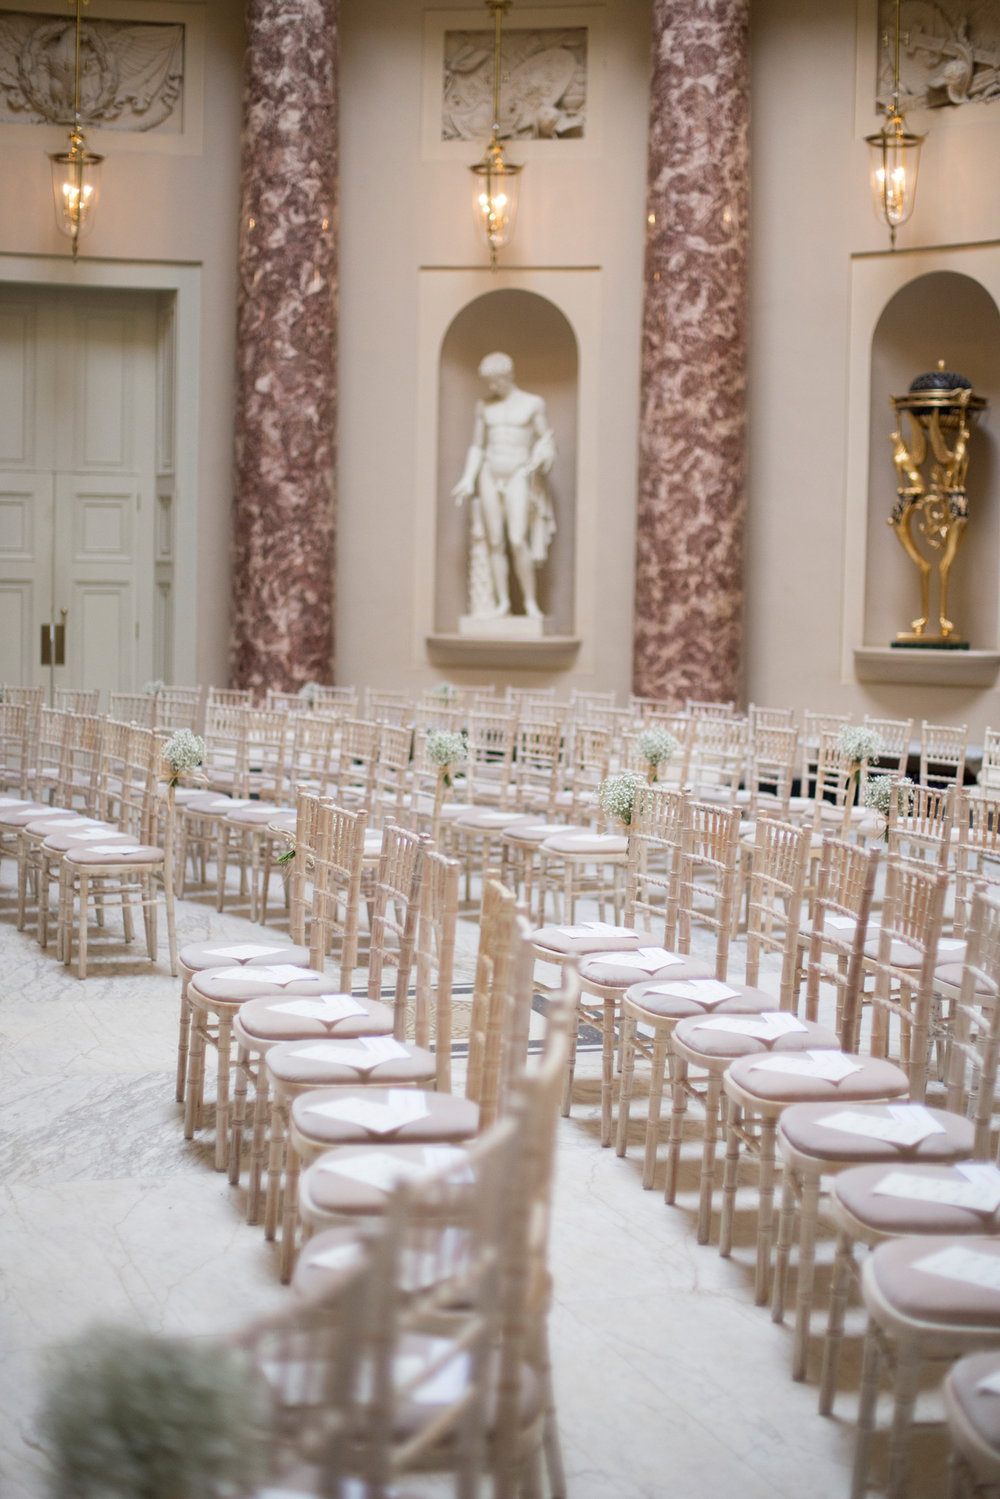 chairs, interior, Stowe, Buckinghamshire,